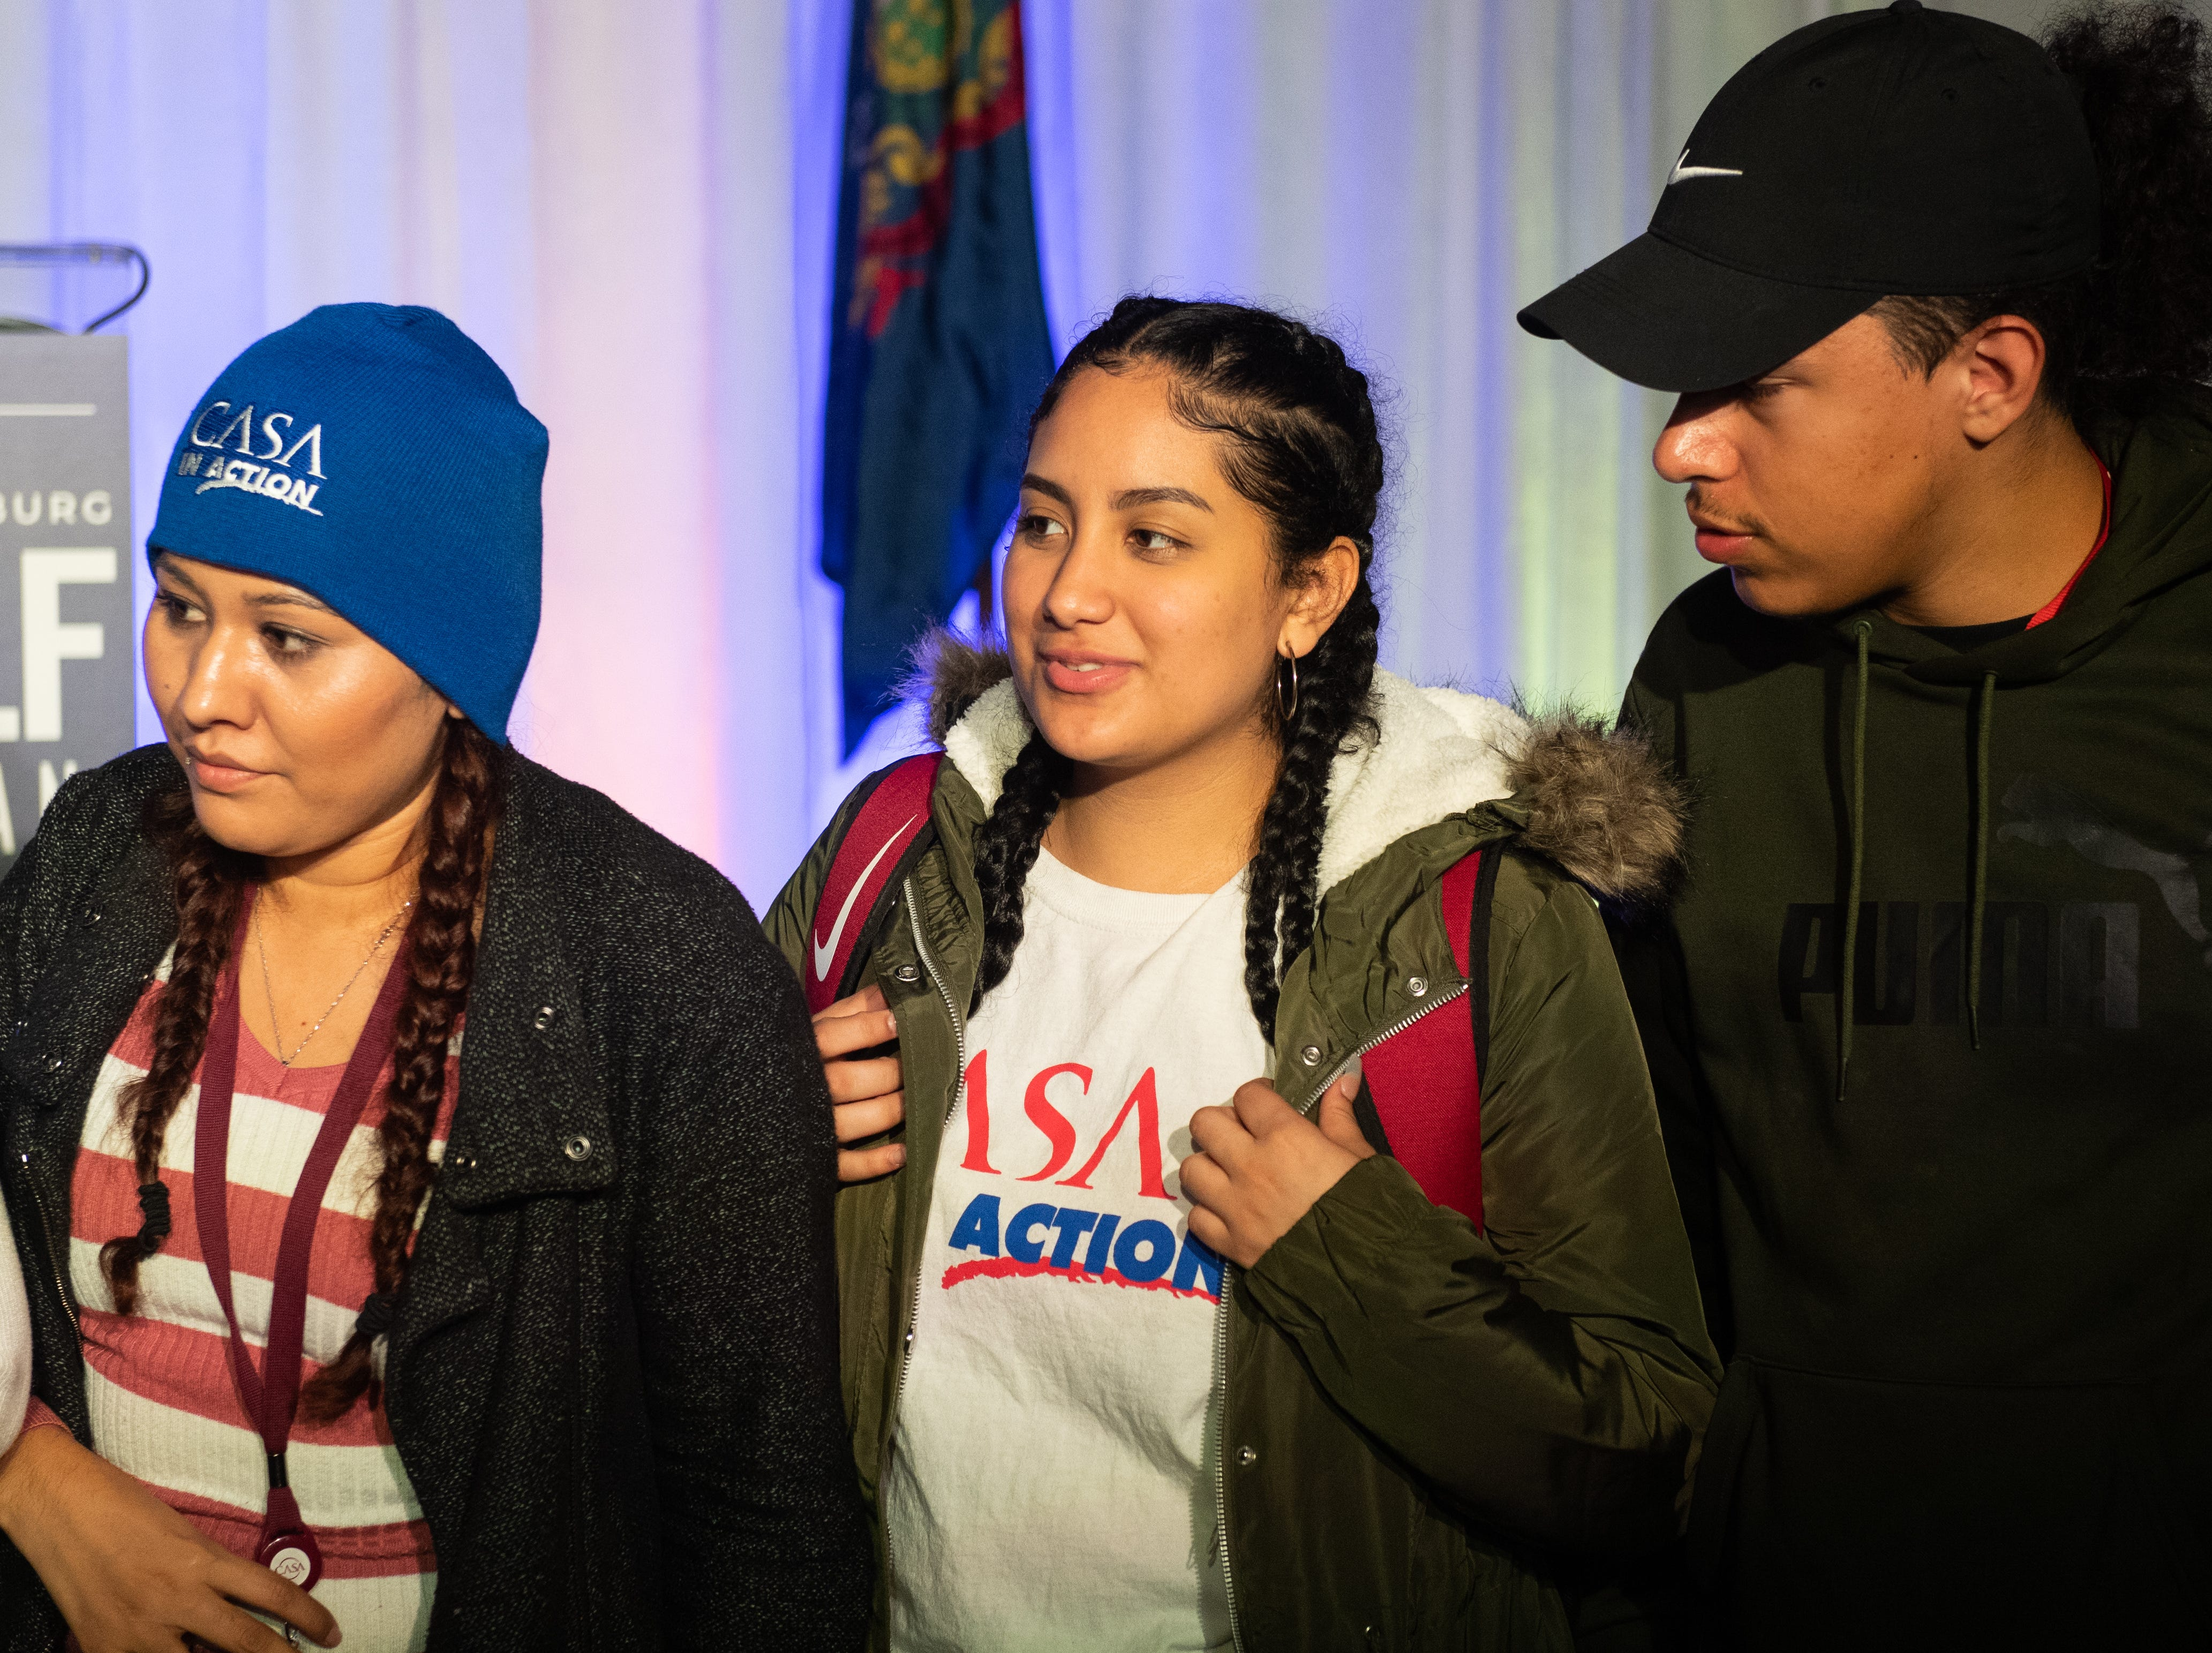 Nayely Lopez, Samantha Portillo, and Nathaniel Rivera take in the atmosphere during the Governor Wolf and Mayor Fetterman Election Night Party at The Bond, Tuesday, November 6, 2018. Tom Wolf was re-elected as Governor of Pennsylvania after defeating Scott Wagner.